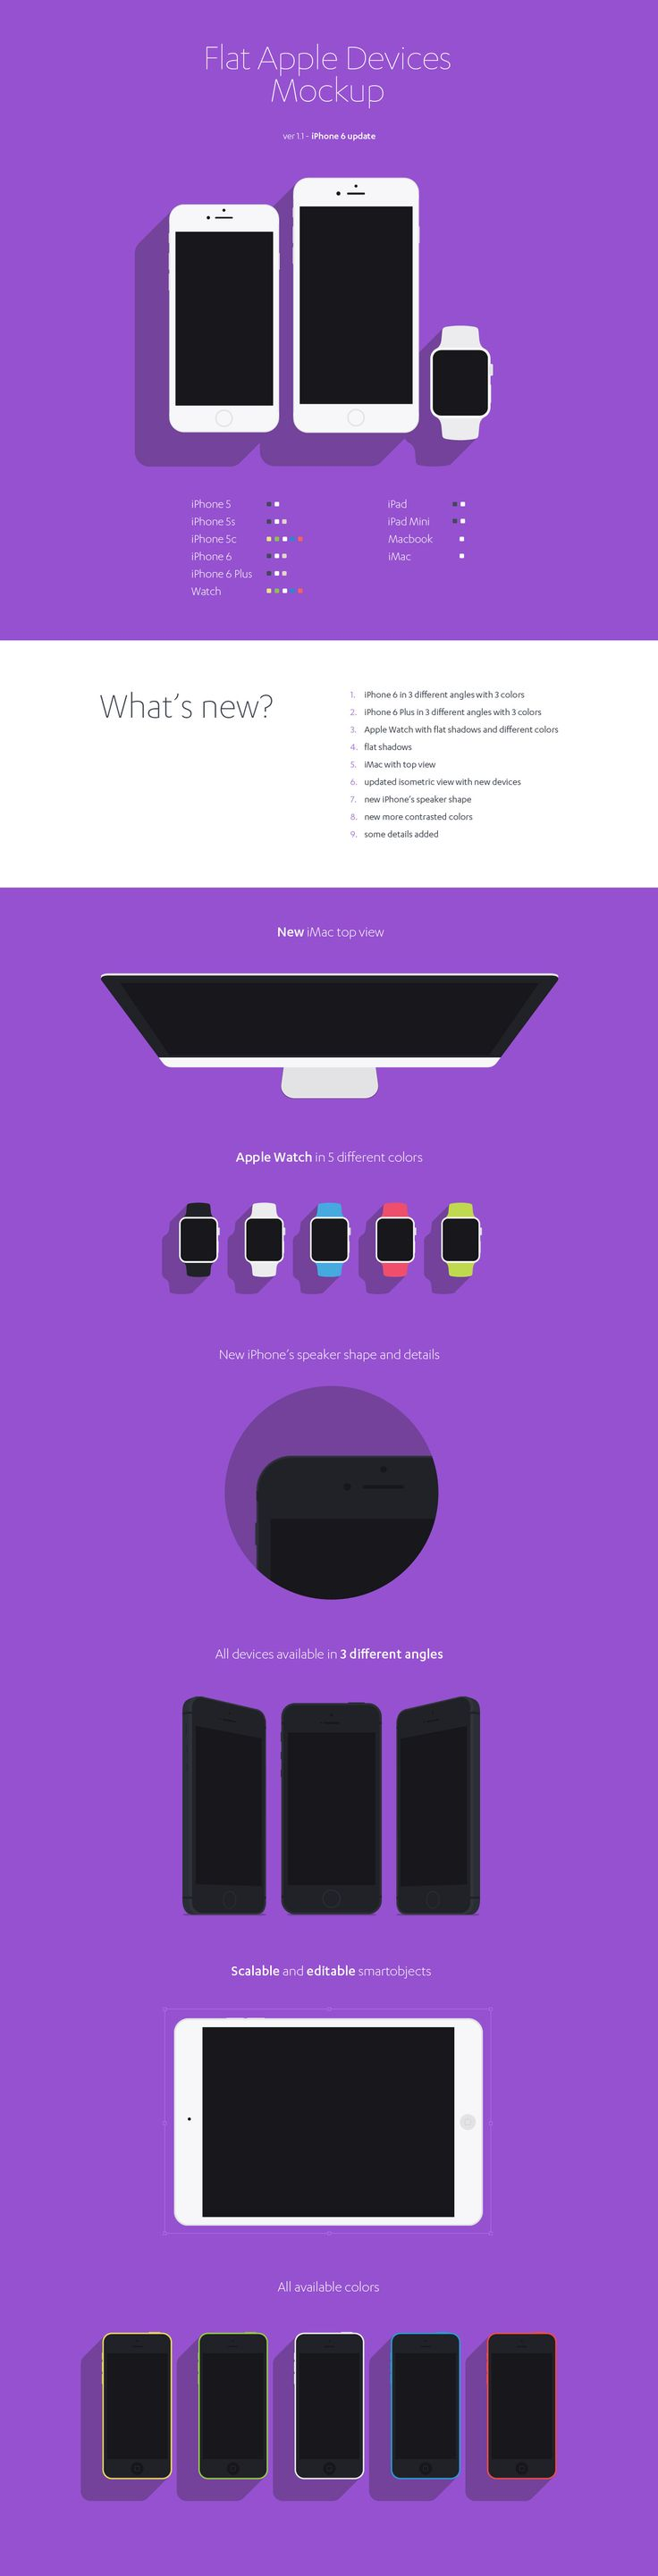 Free Download : Flat Apple Devices Mockup (iPhones, iPads, iMac and Macbook, Apple Watch)